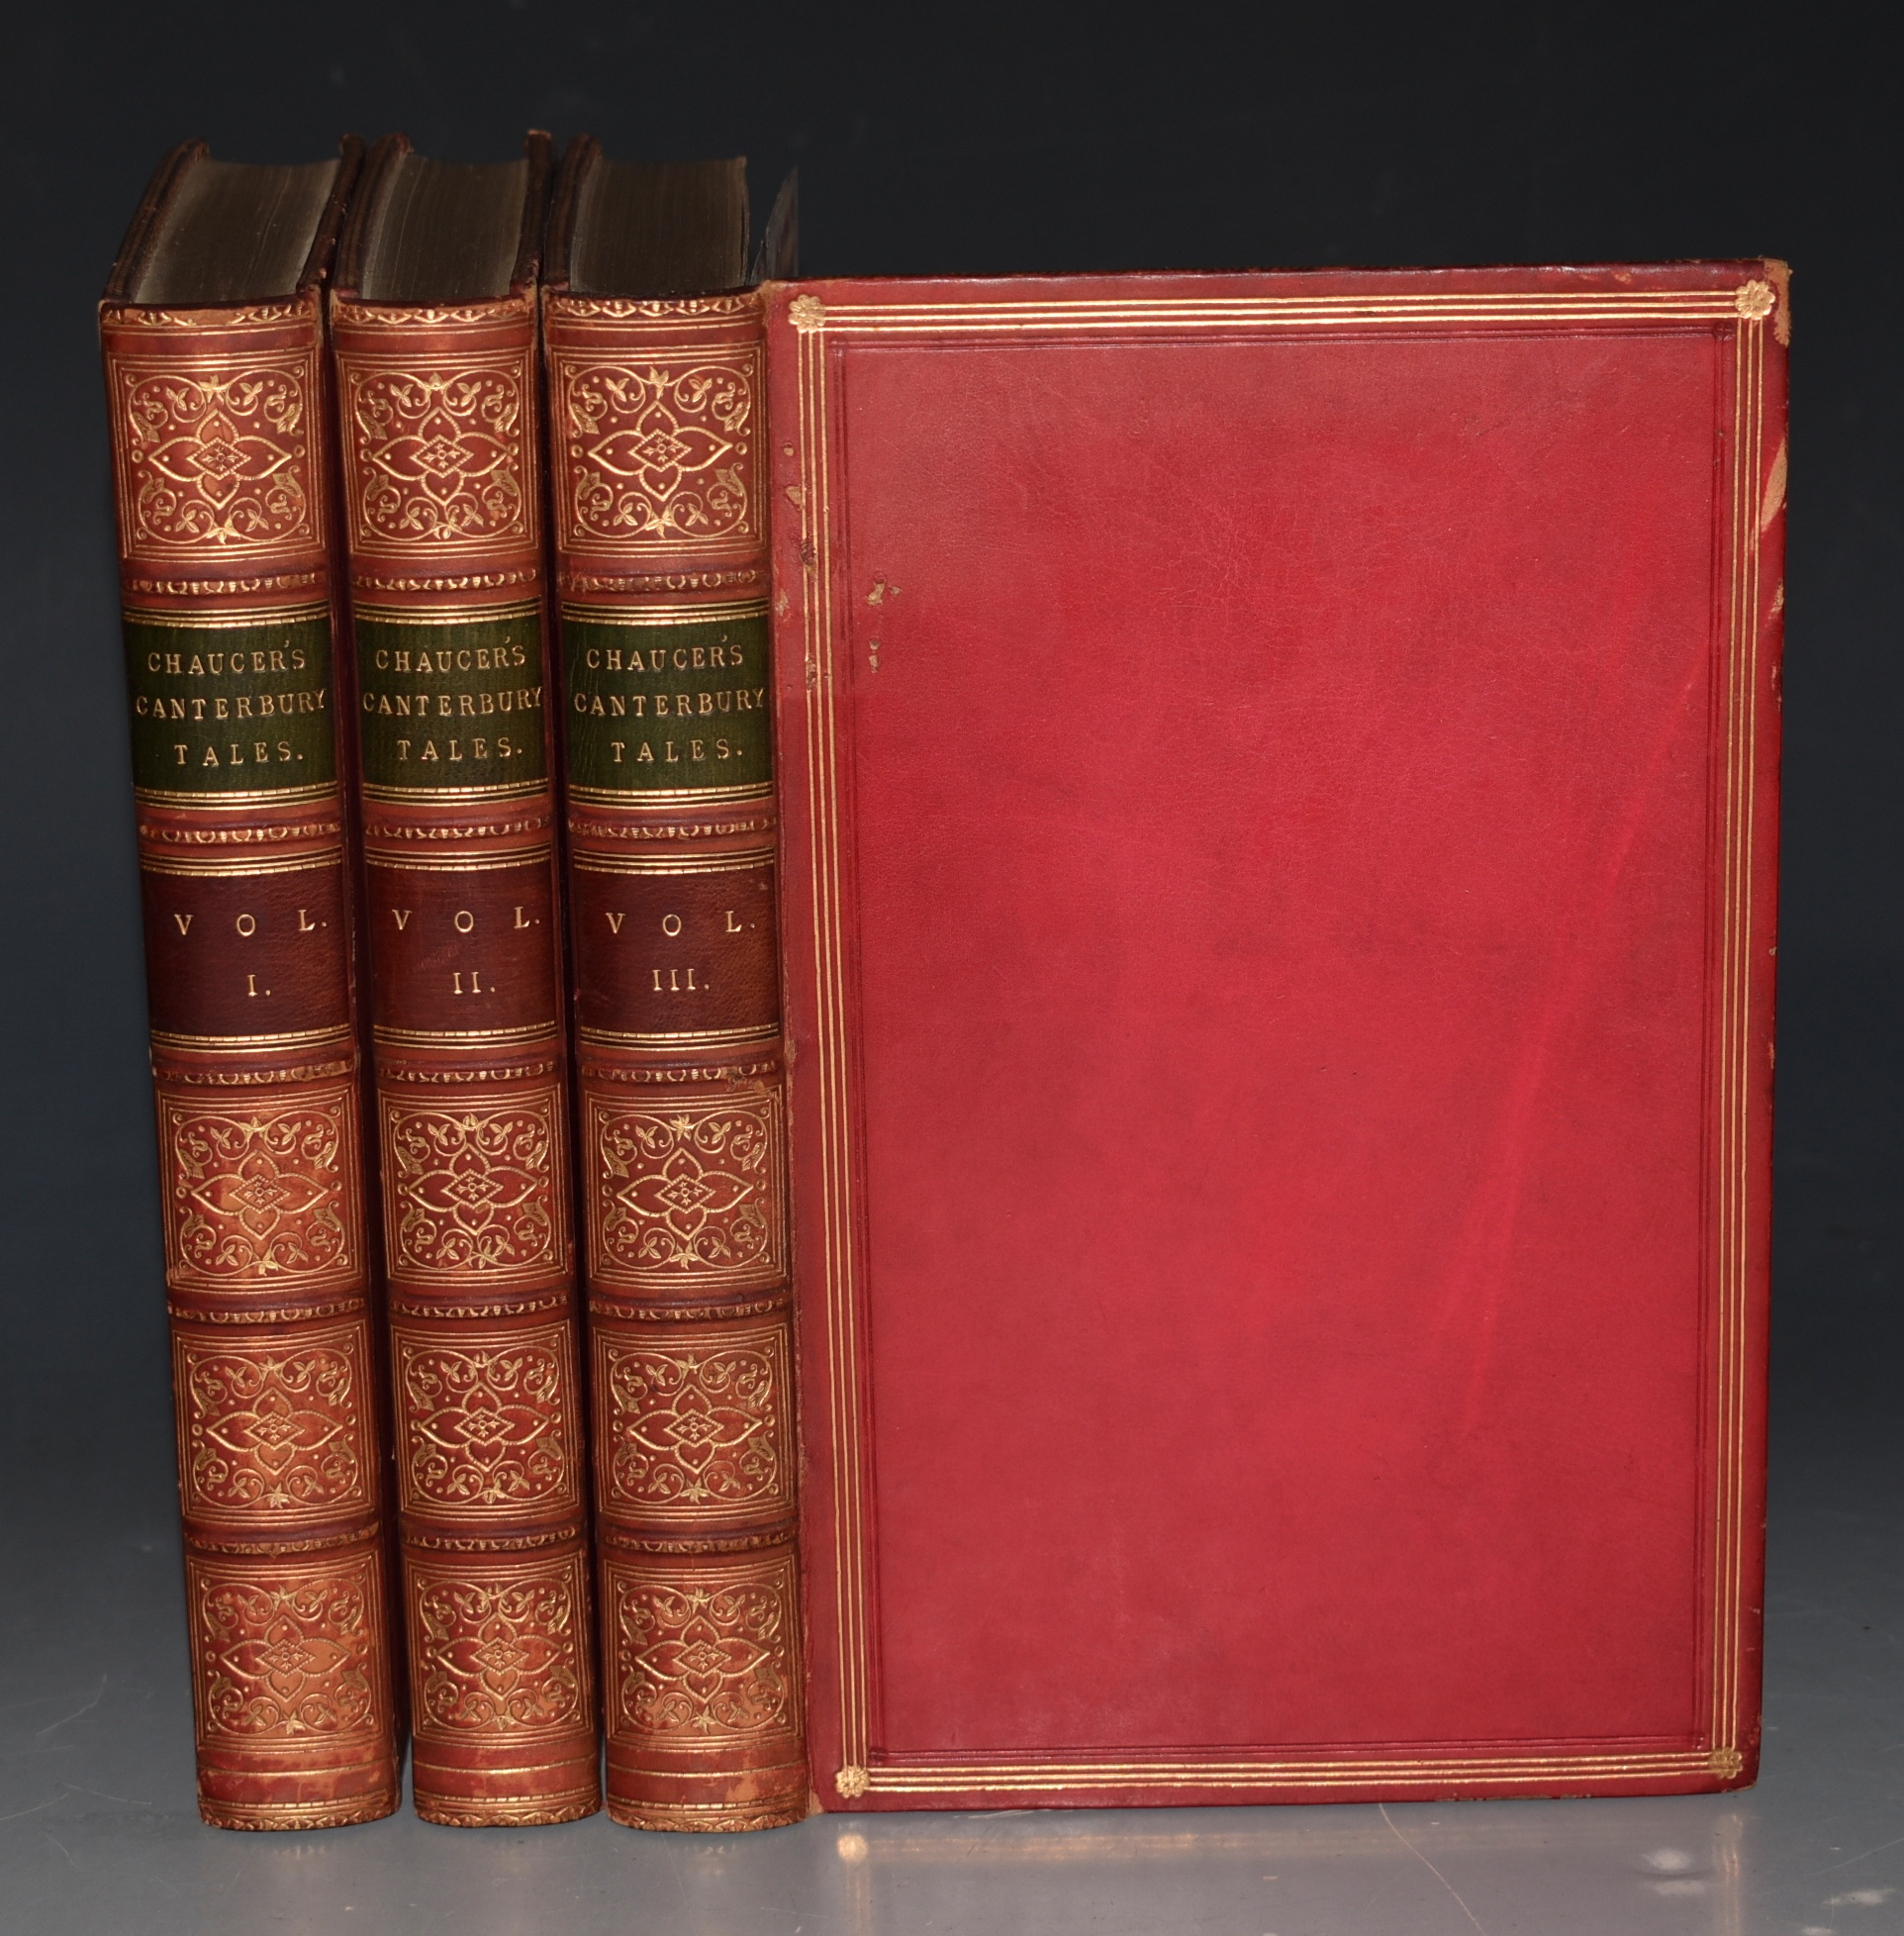 Image for The Canterbury Tales of Chaucer. An Essay on His Language and Versification, and an Introductory Discourse, together with notes and a Glossary by Thomas Tyrwhitt. With Memoir and Critical Dissertaion, by the Rev. George Gilfillian. The Text Edited by Charles Cowden Clarke. In Three Volumes.